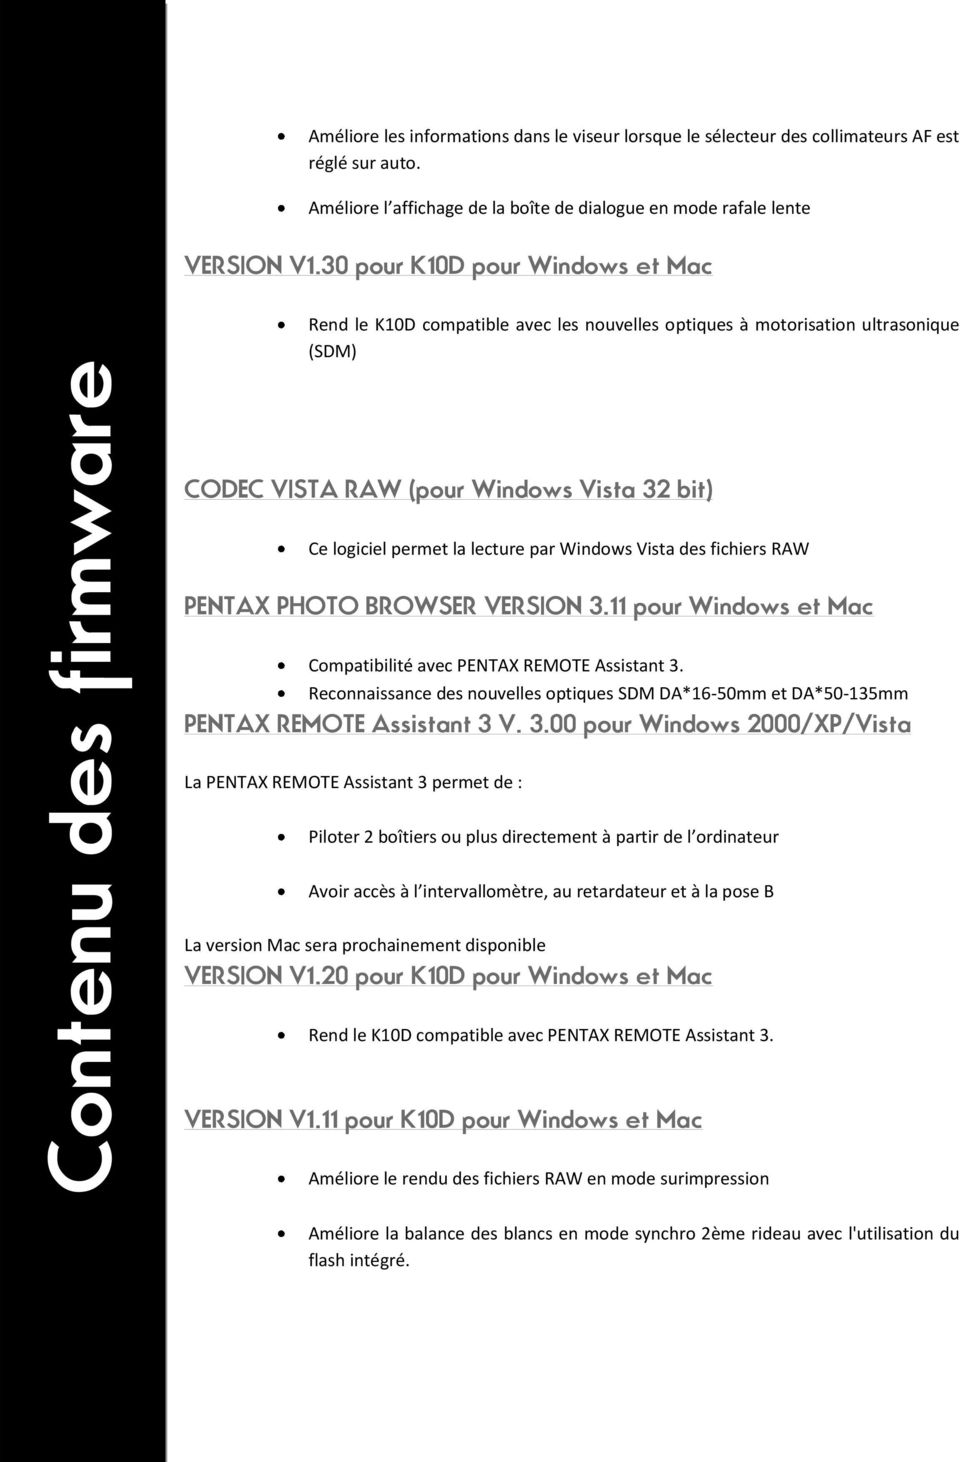 Windows Vista des fichiers RAW PENTAX PHOTO BROWSER VERSION 3.11 pour Windows et Mac Compatibilité avec PENTAX REMOTE Assistant 3.